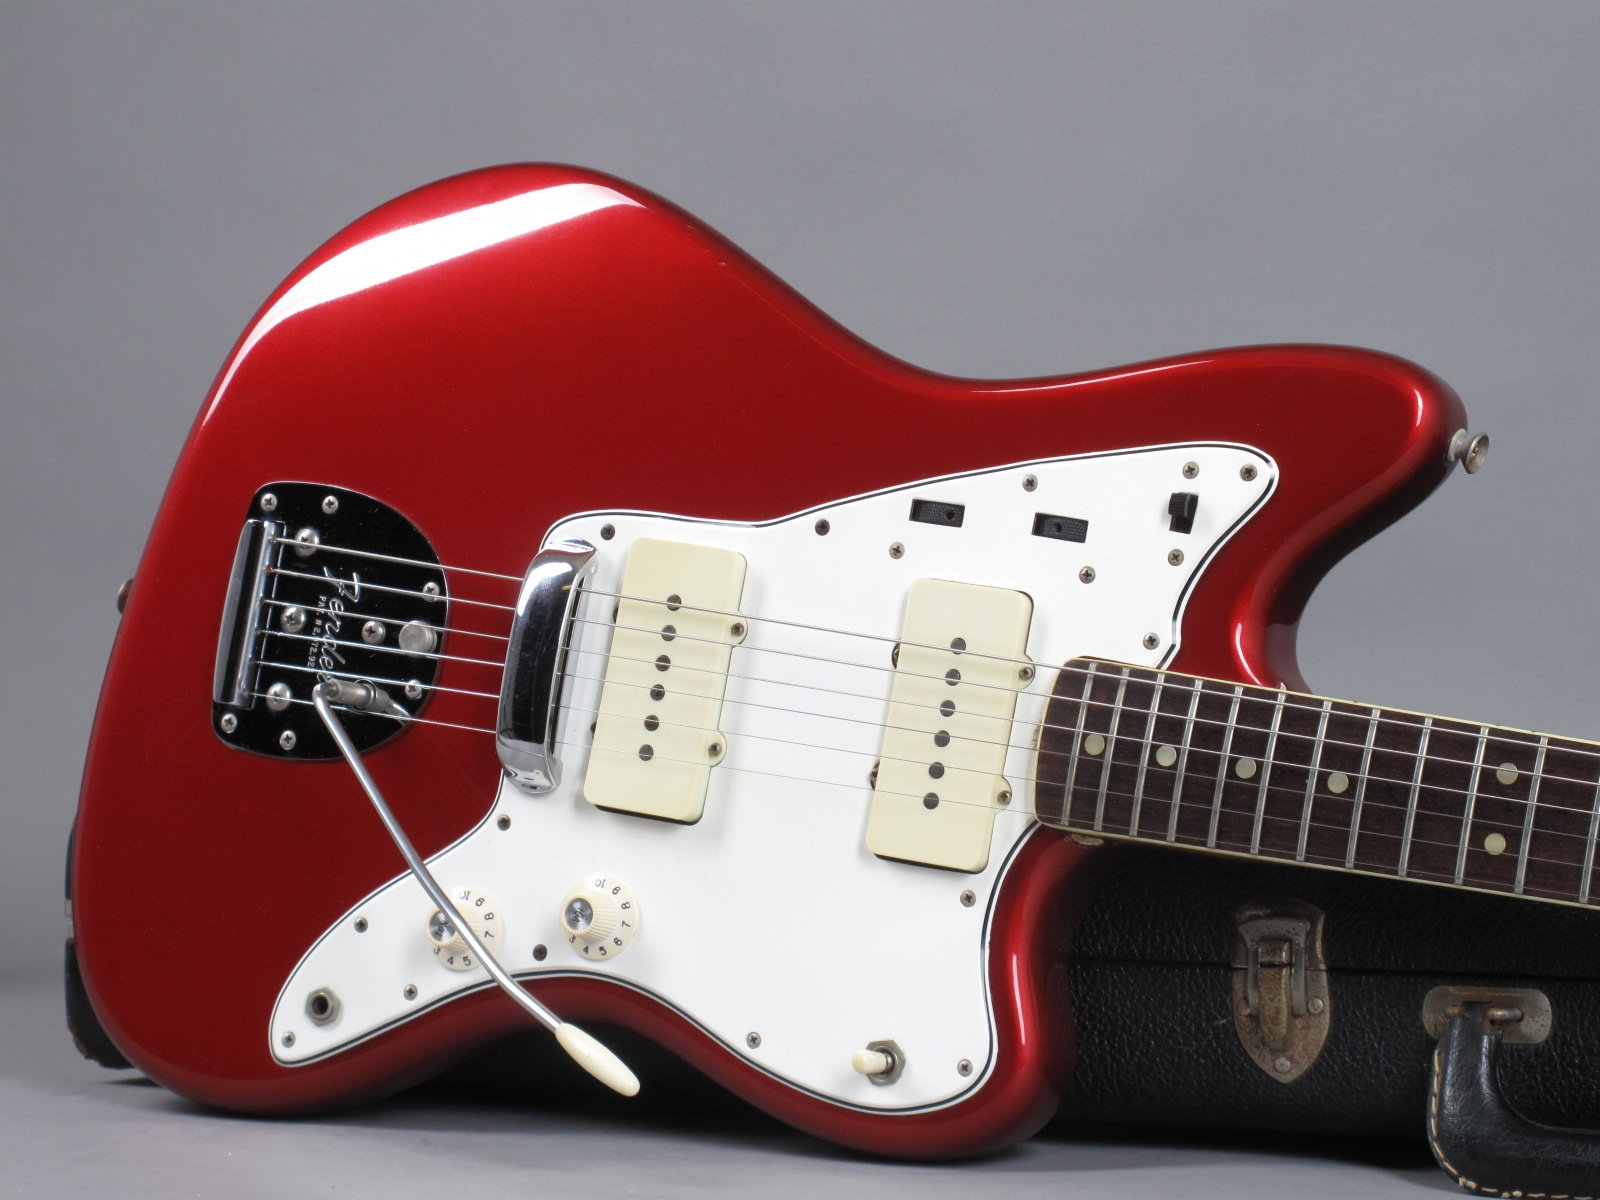 https://guitarpoint.de/app/uploads/products/1966-fender-jazzmaster-candy-apple-red-exc/1966-Fender-Jazzmaster-Candy-Apple-Red-130594-19.jpg